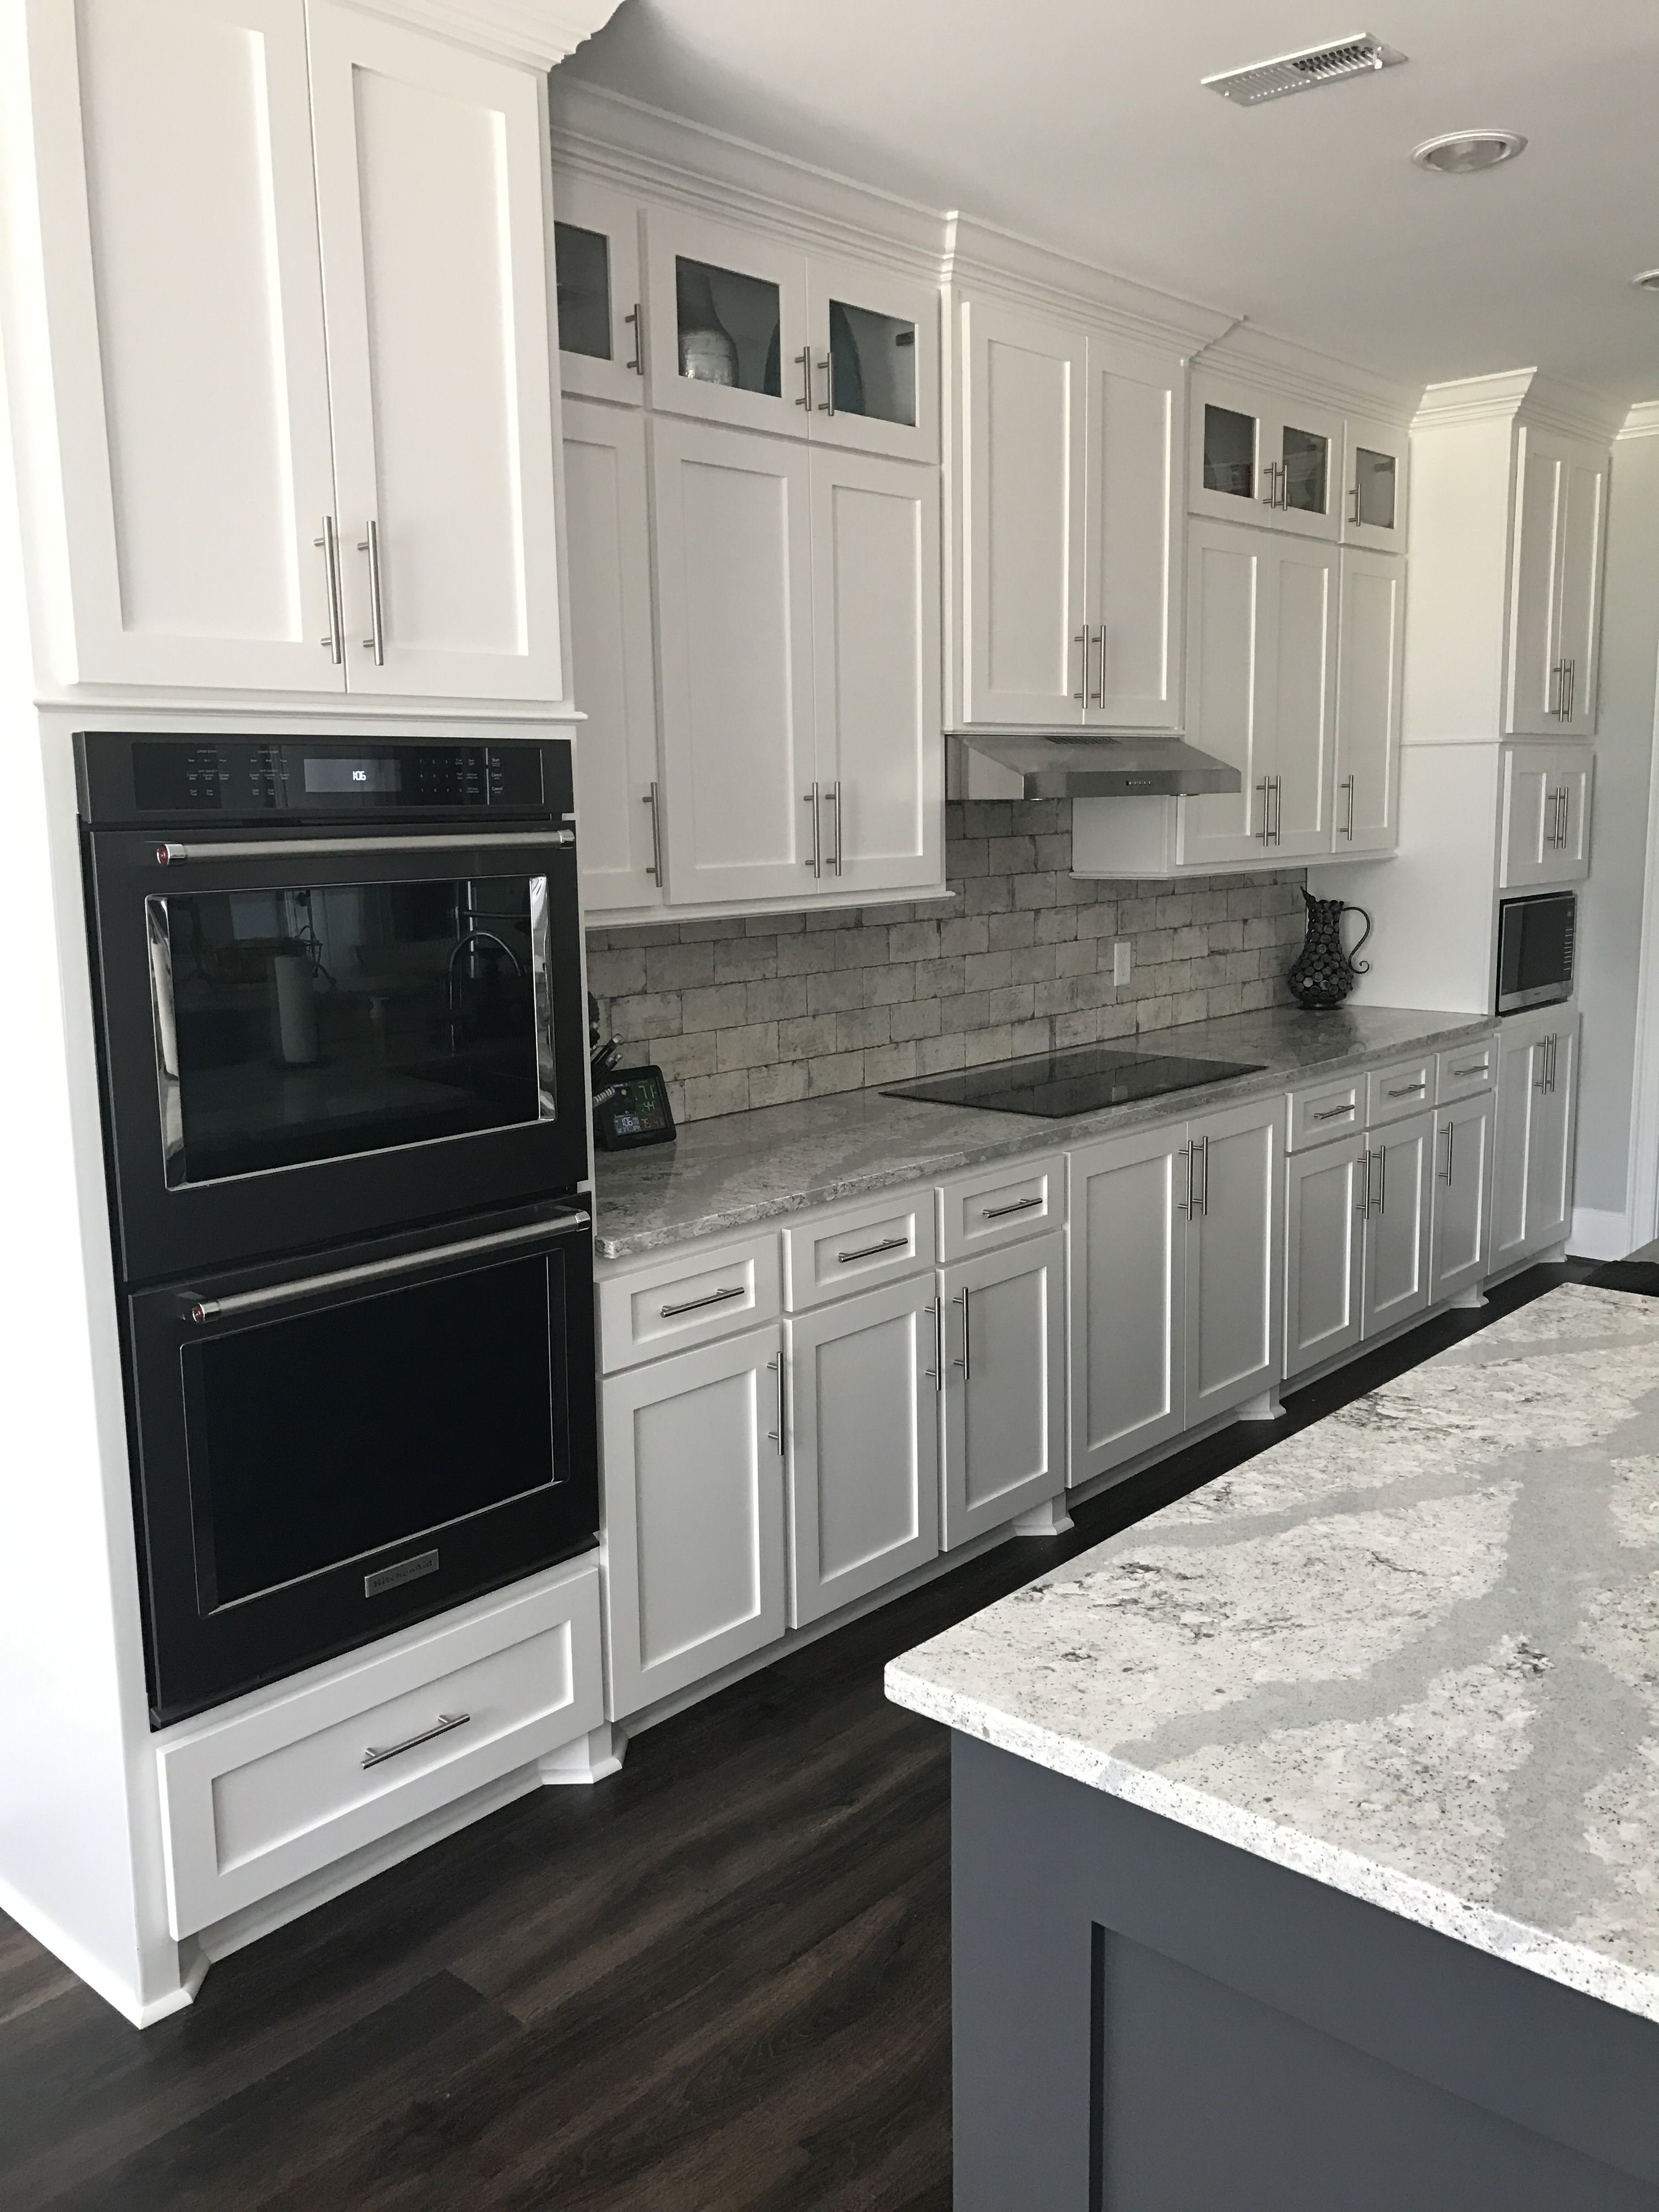 black stainless steel kitchen pictures of wood cabinets kitchenaid appliances white